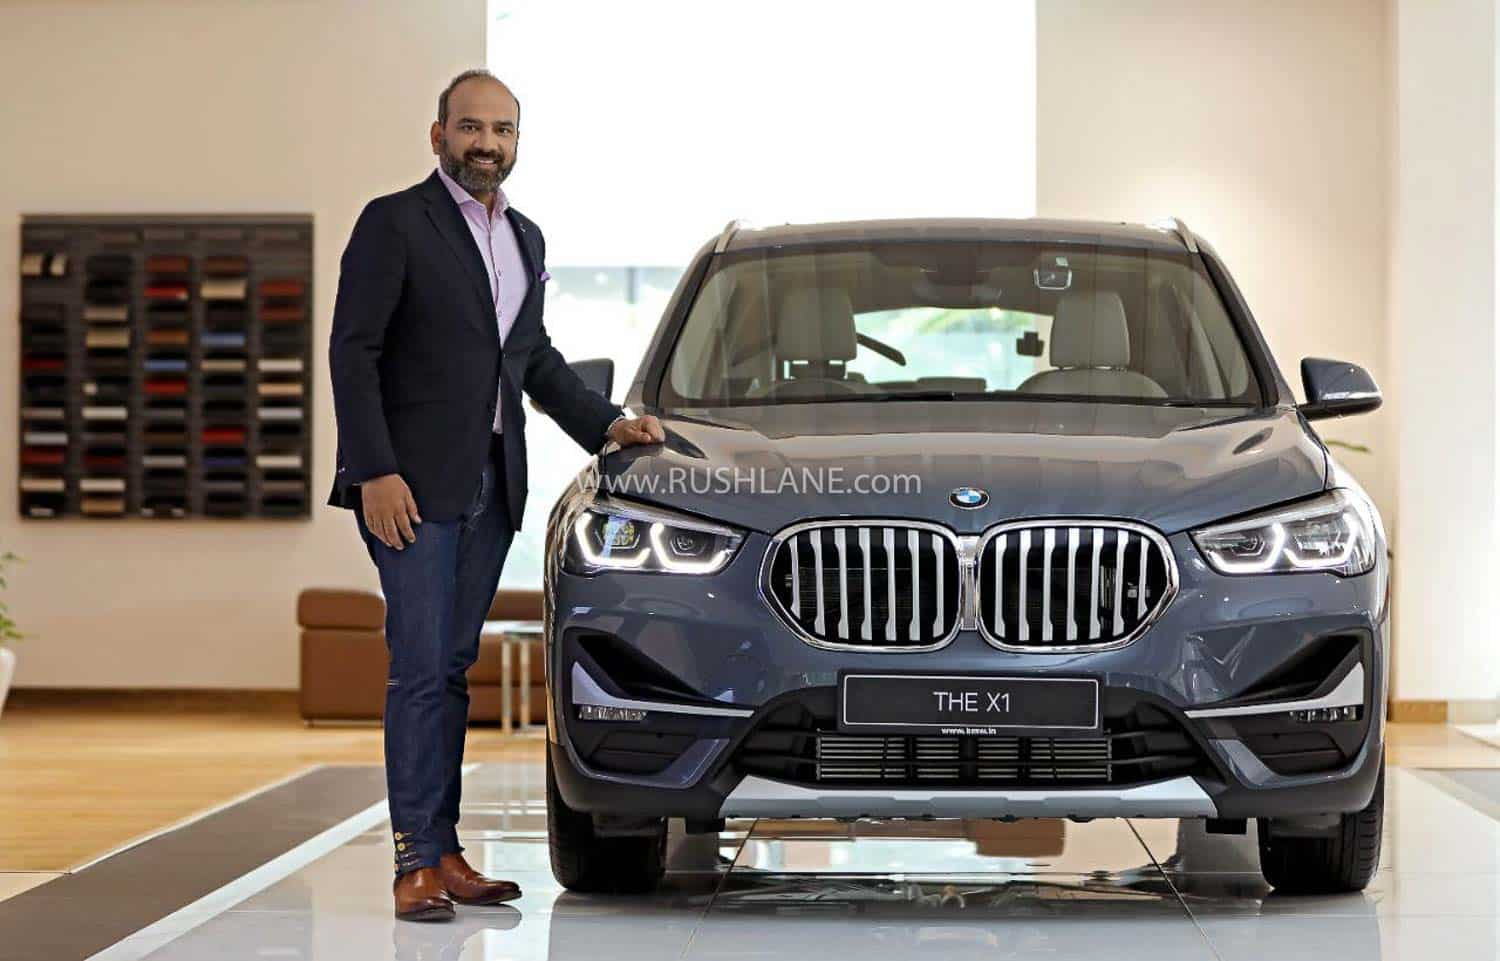 2020 BMW X1 facelift with BMW India President